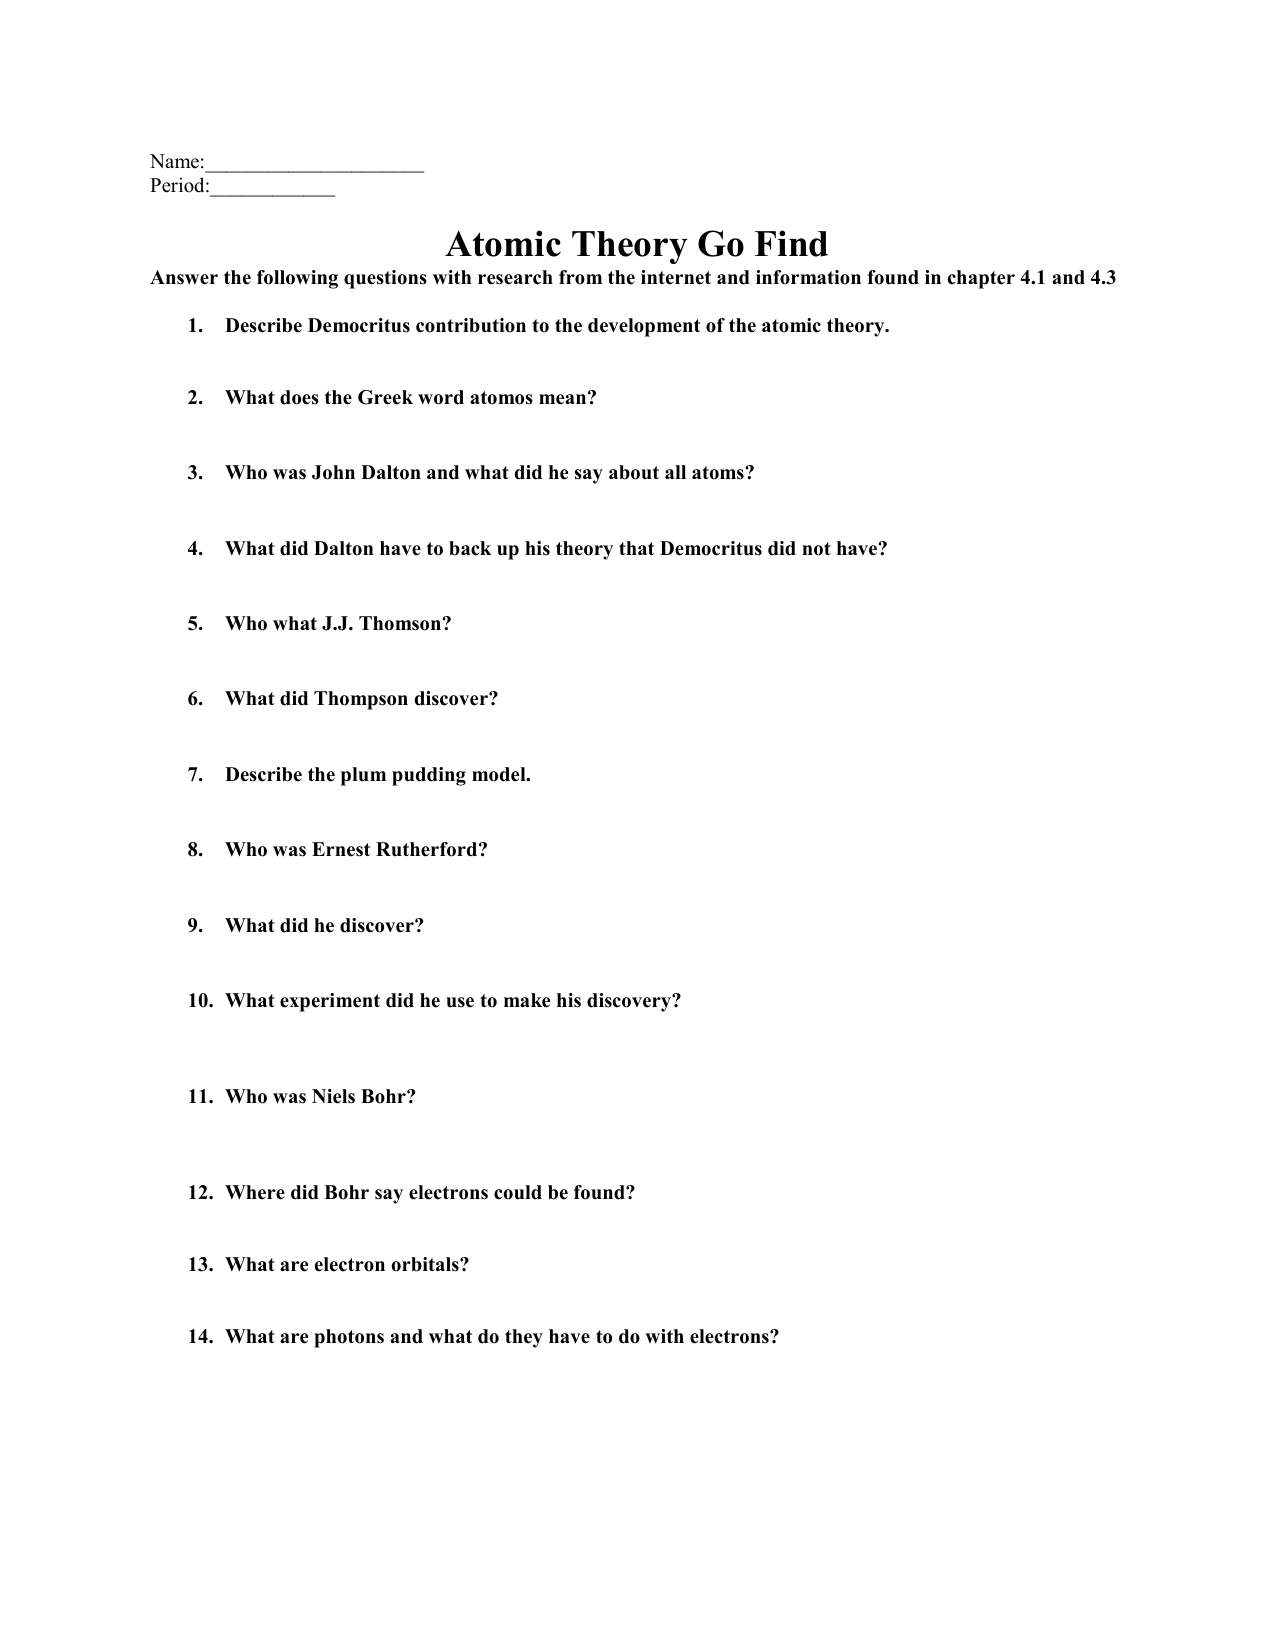 Atomic Theory Go Find and Reading Guide